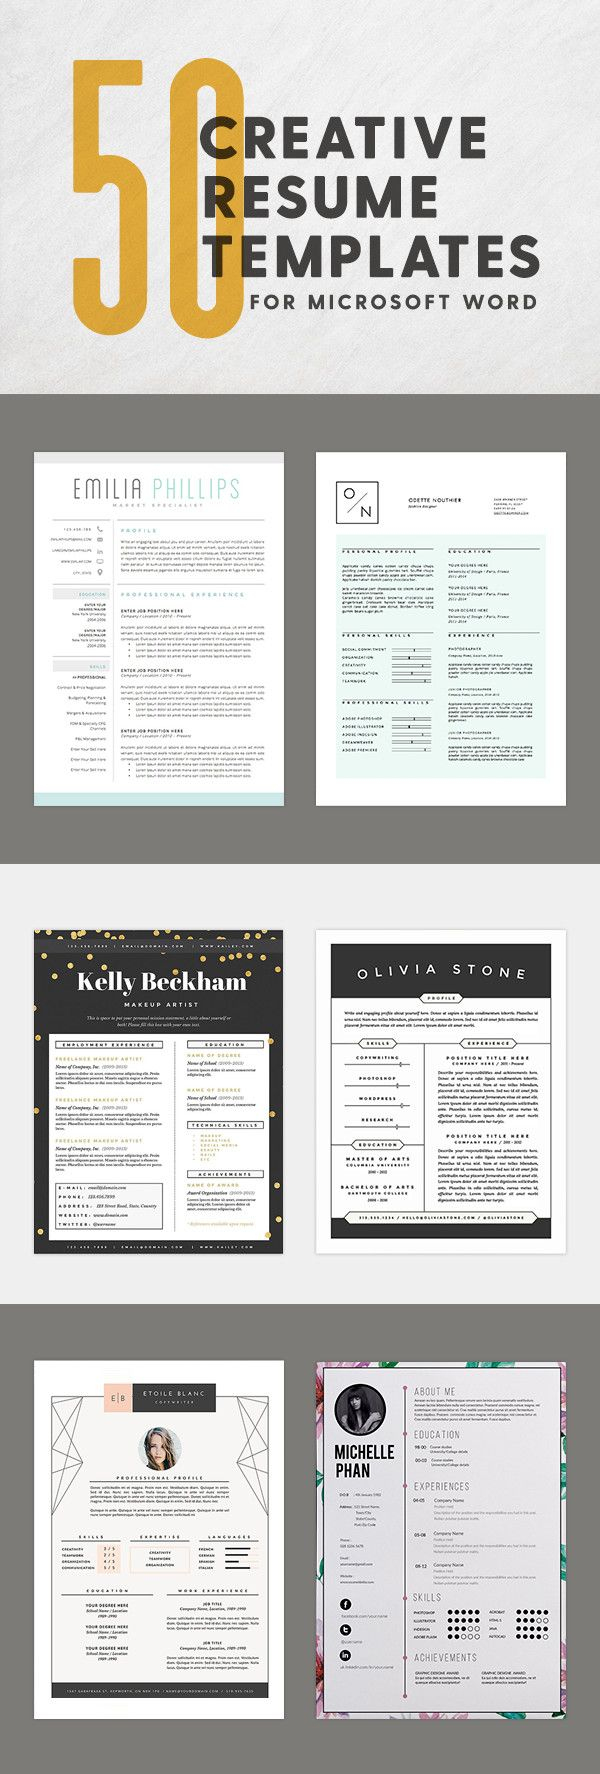 Unique Resume Templates Alluring 61 Best ✏ Professional Resume Templates Images On Pinterest Design Ideas